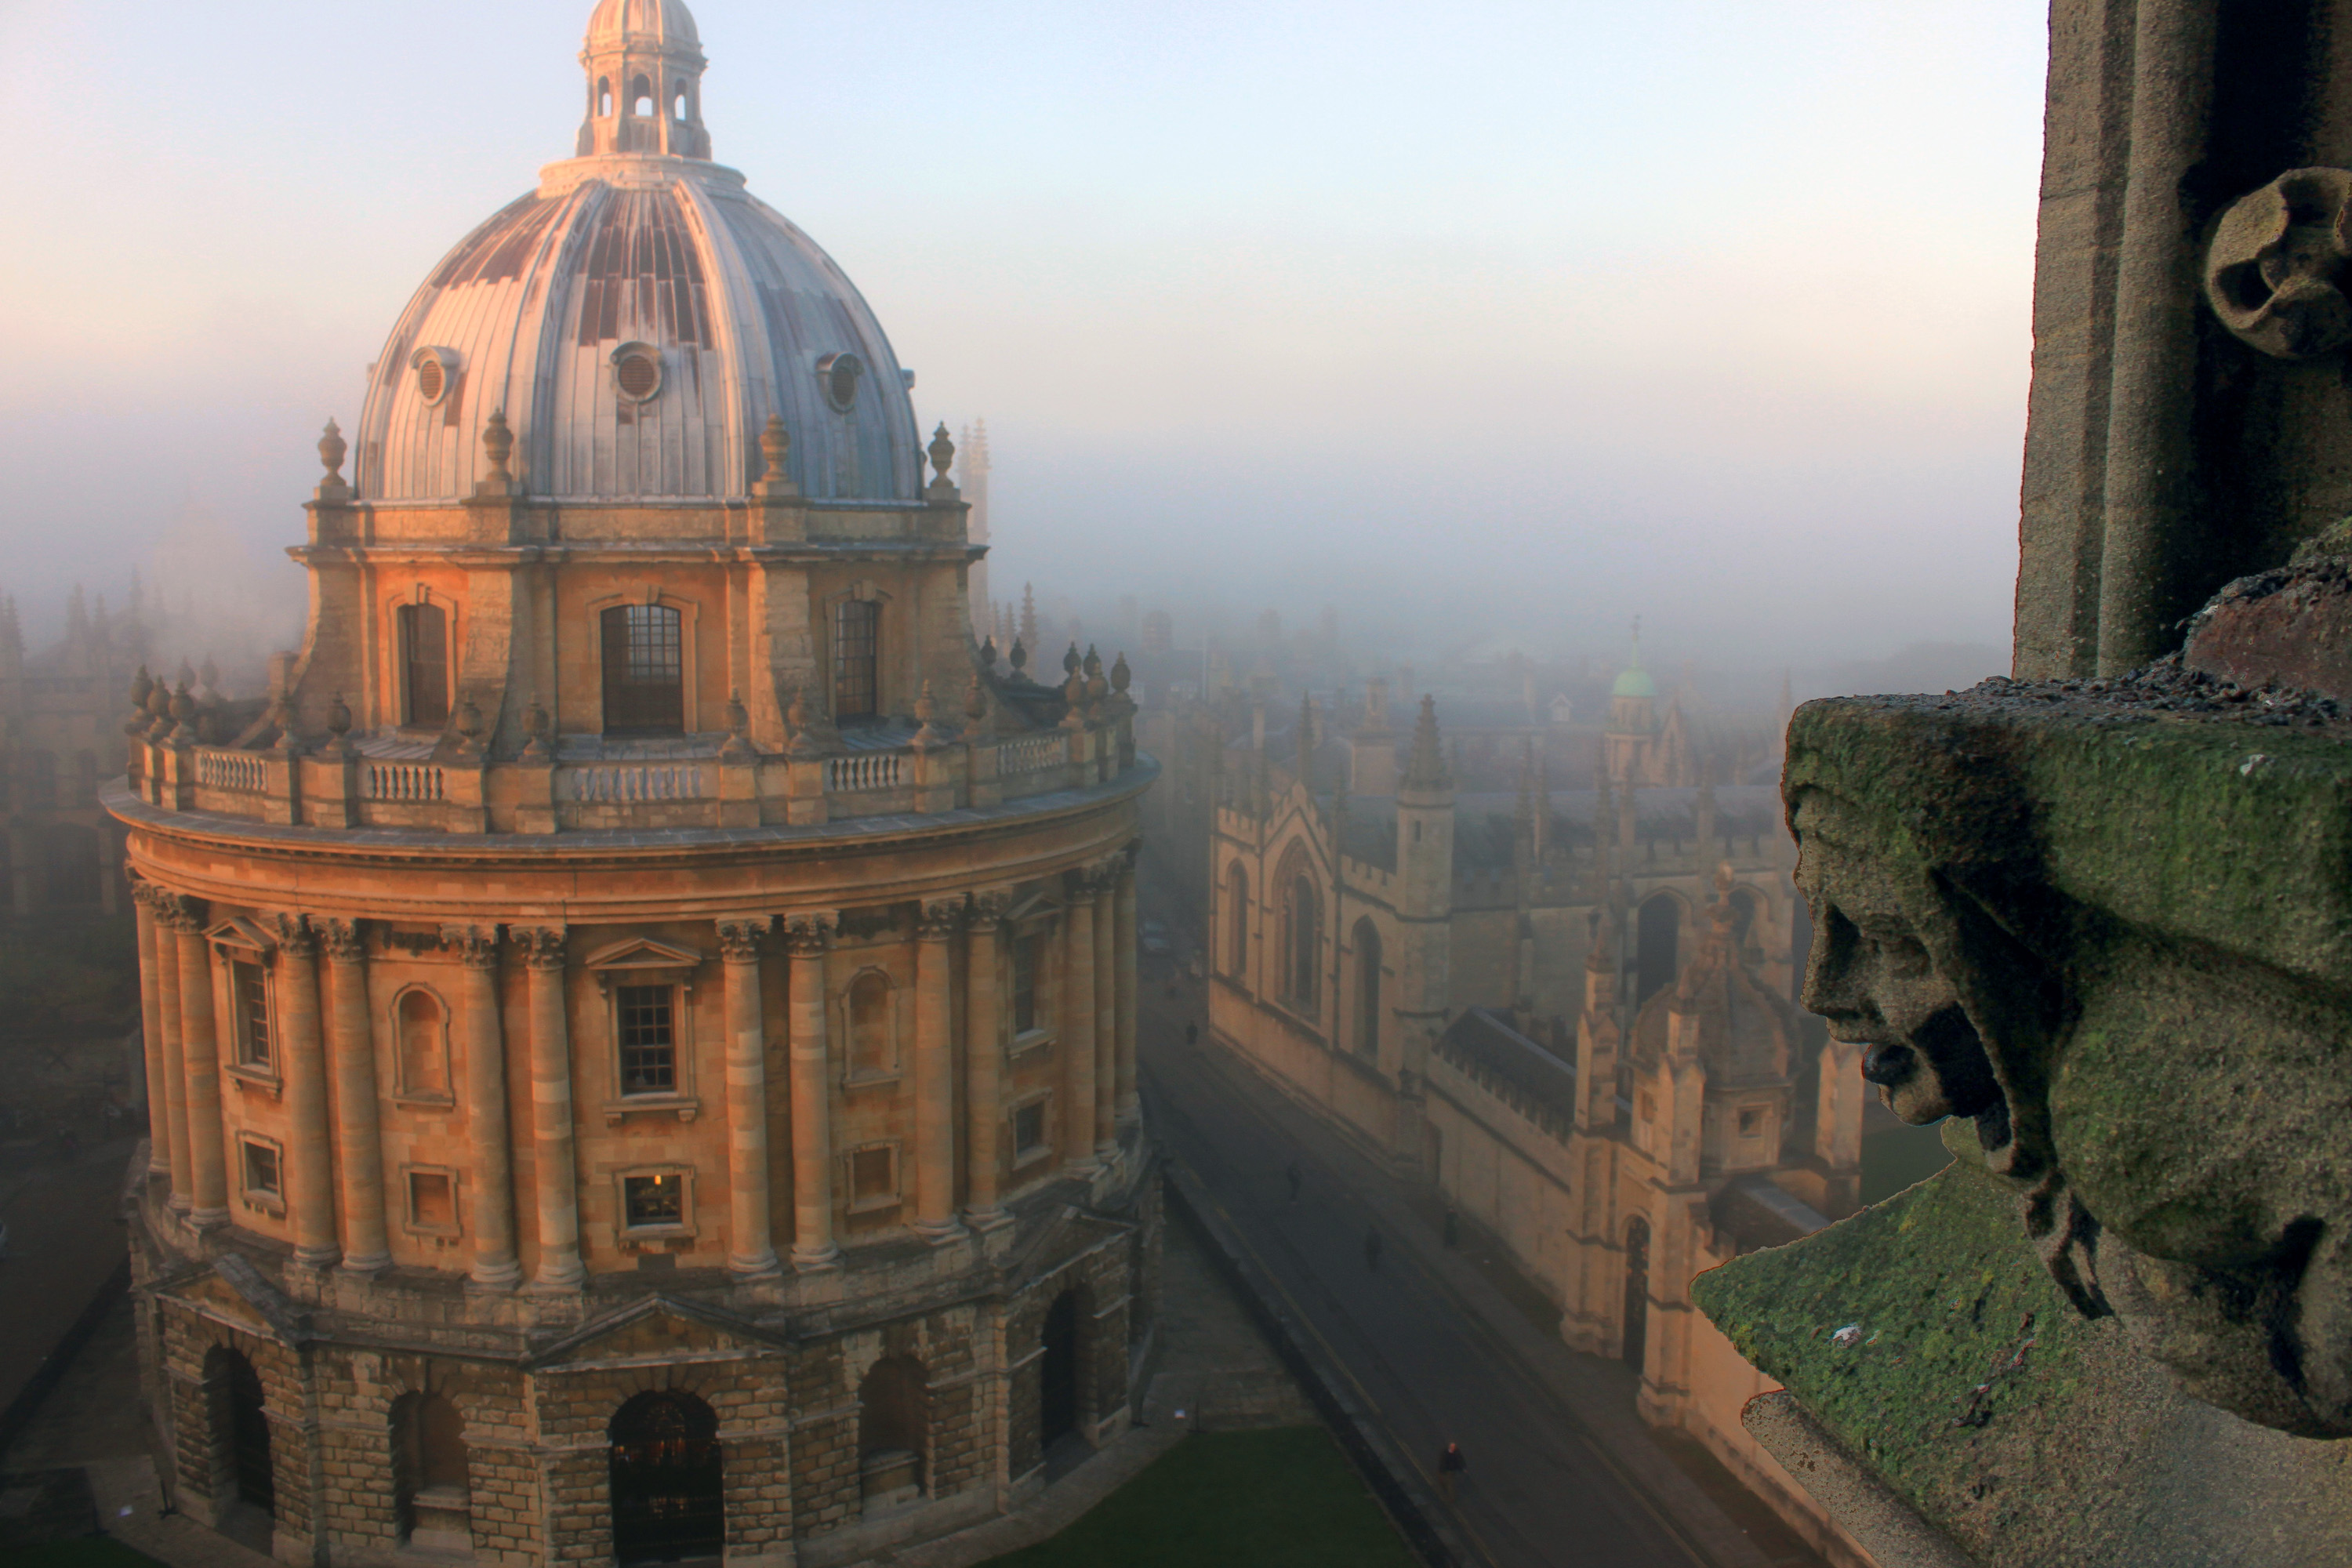 File:Oxford University, Radcliffe Camera, a Reading room of